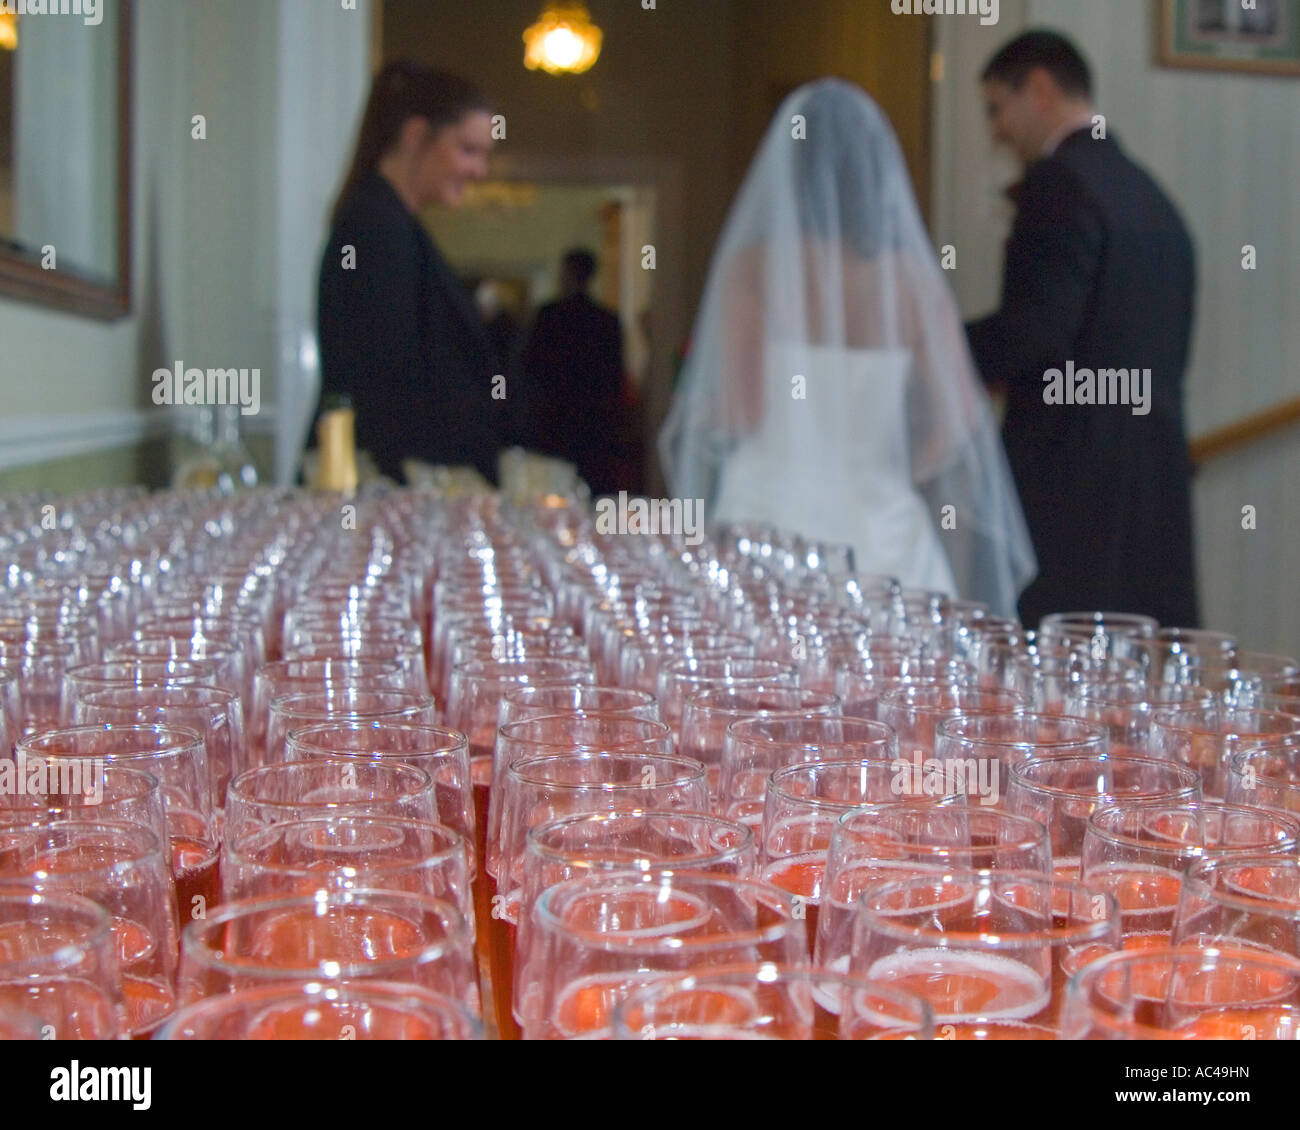 beyond the champaign glasses - Stock Image